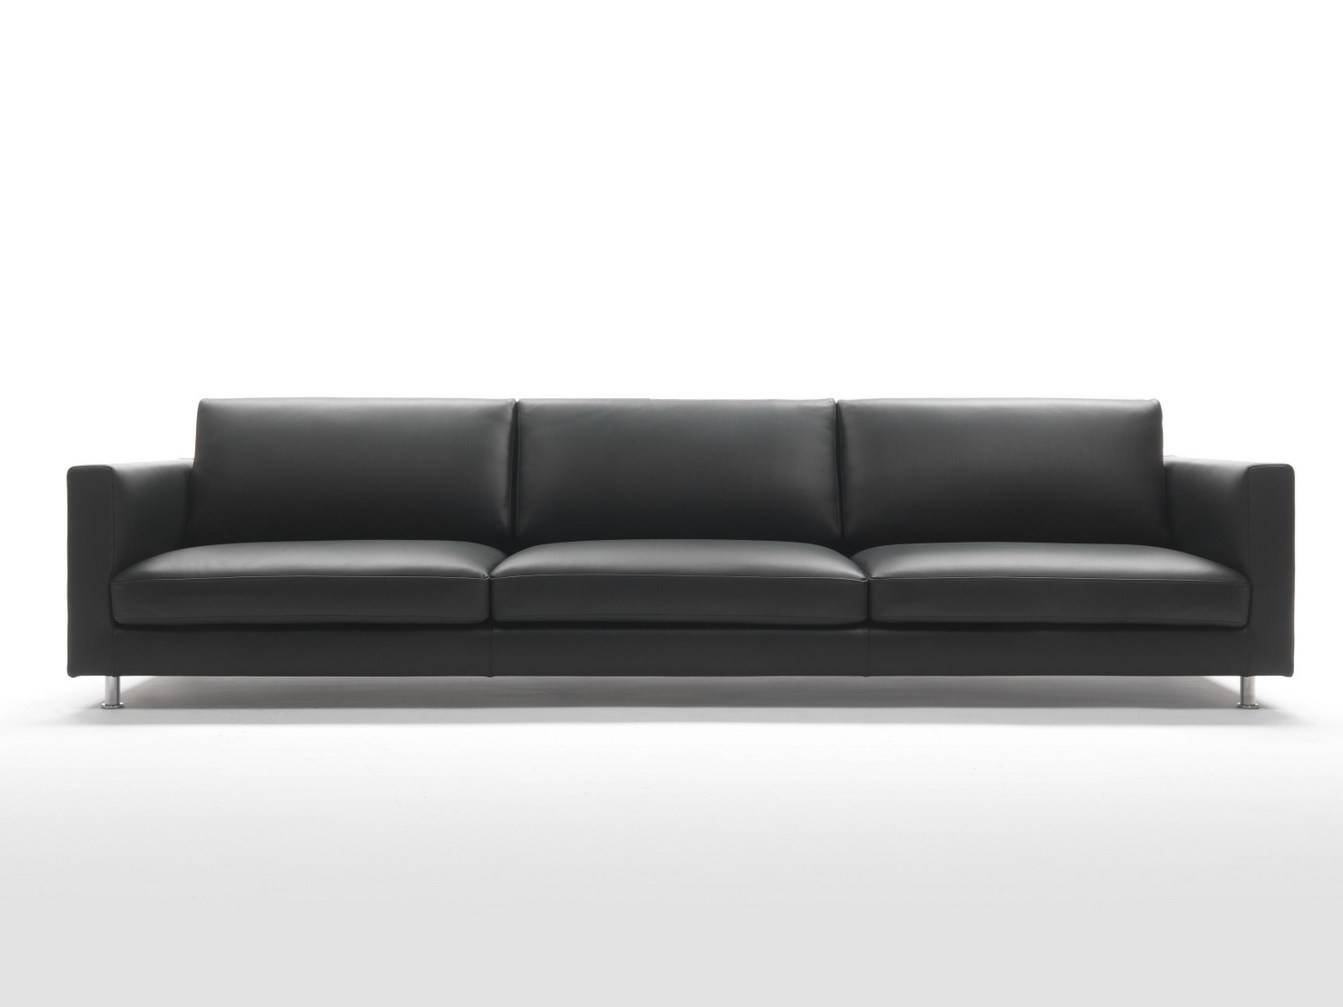 Popular Seat Leather Sofa With Newcastle Leather Seater Sofa The Intended For 4 Seat Leather Sofas (View 18 of 30)